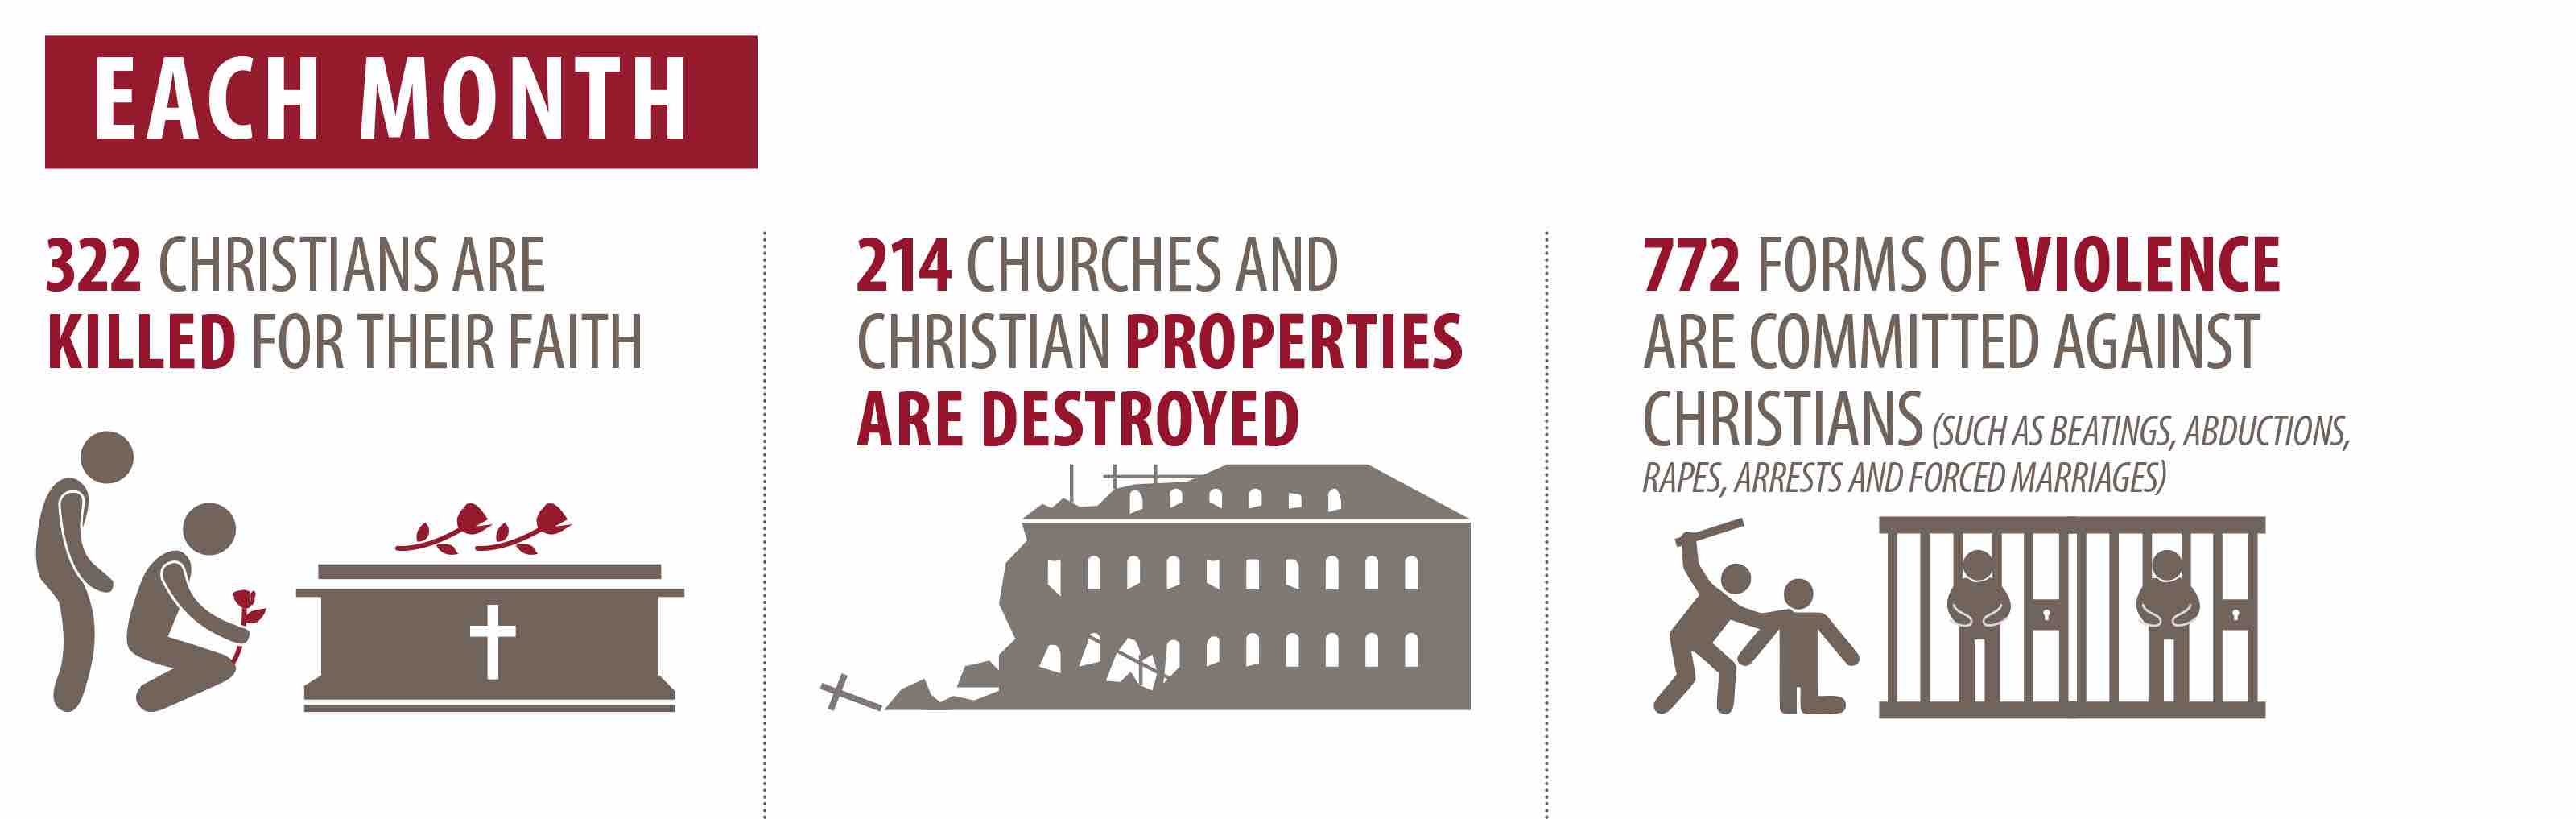 church persecution stats